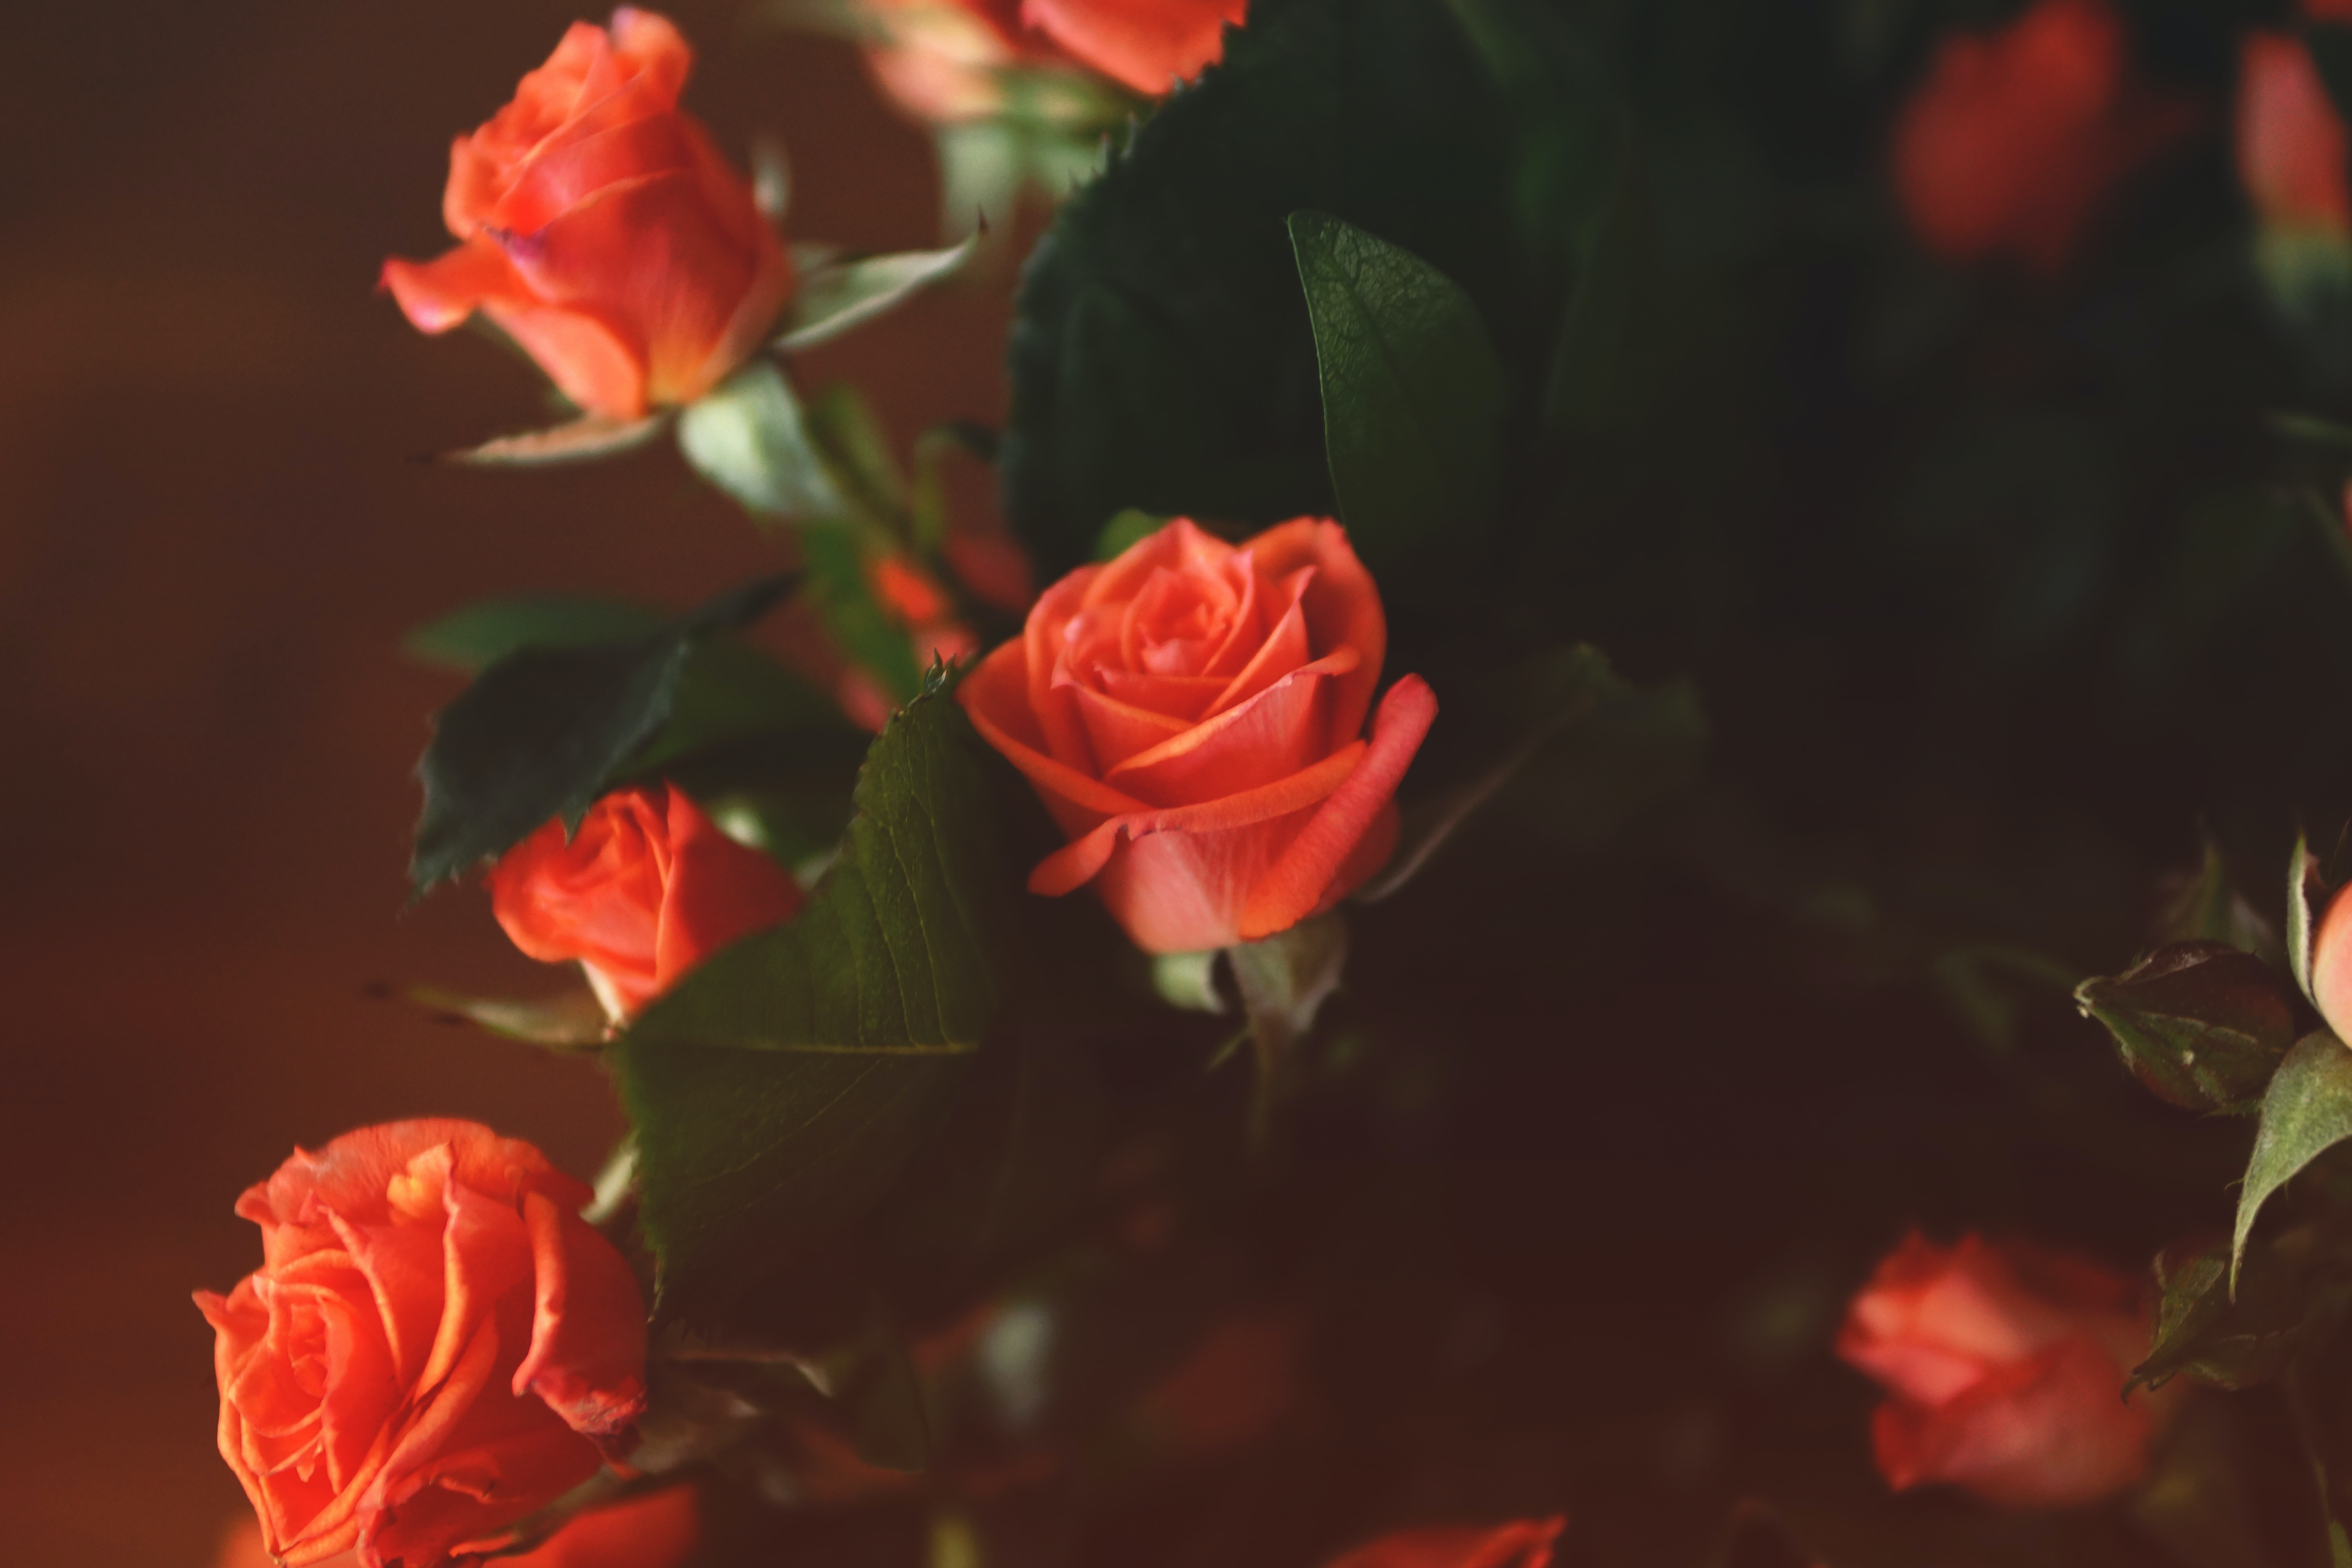 photo of red rose with green leaf arrangement